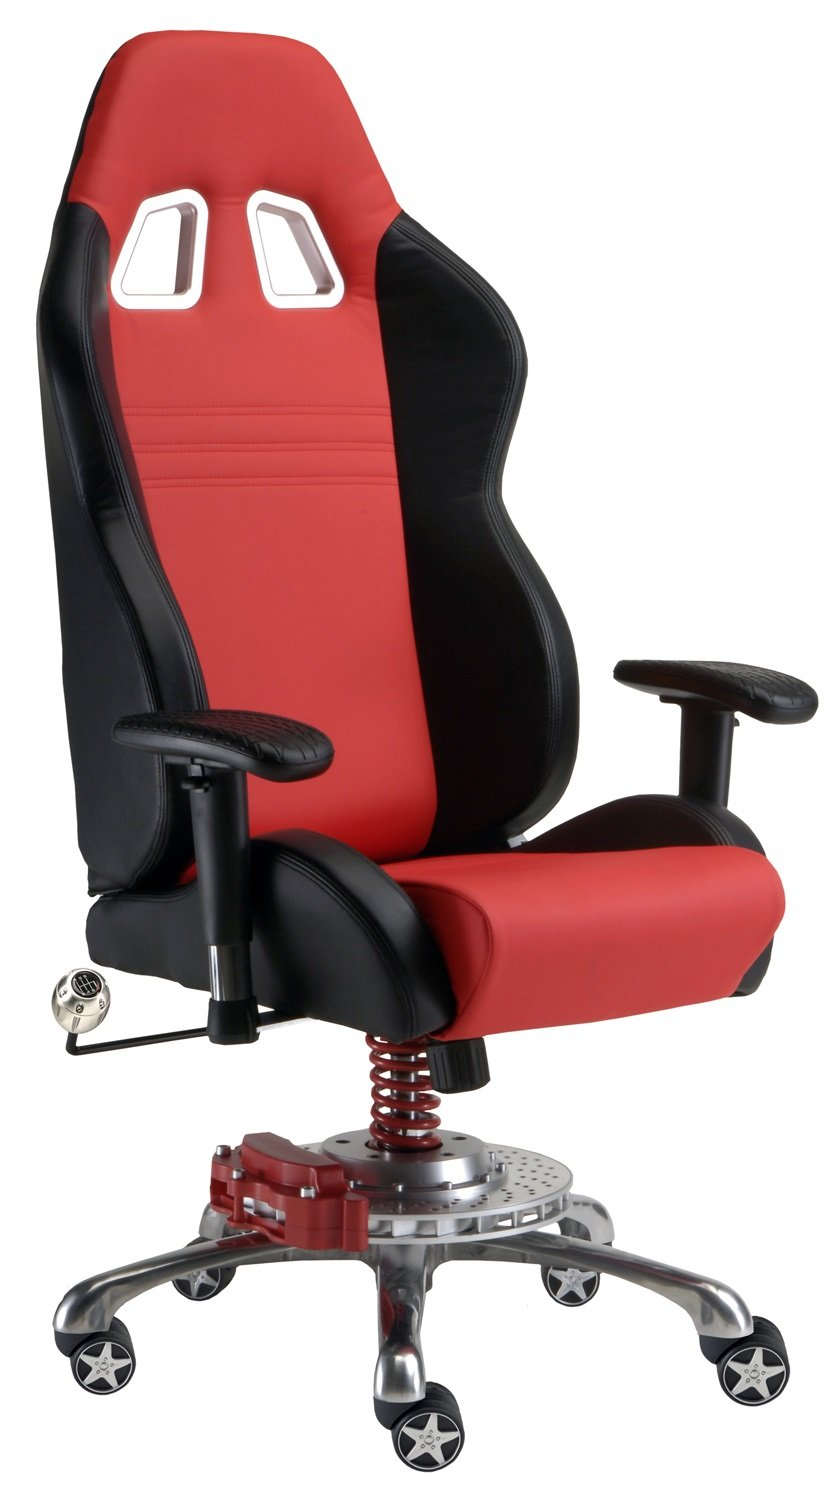 Pitstop Furniture GP1000R GT Office Chair, Red by Pitstop Furniture